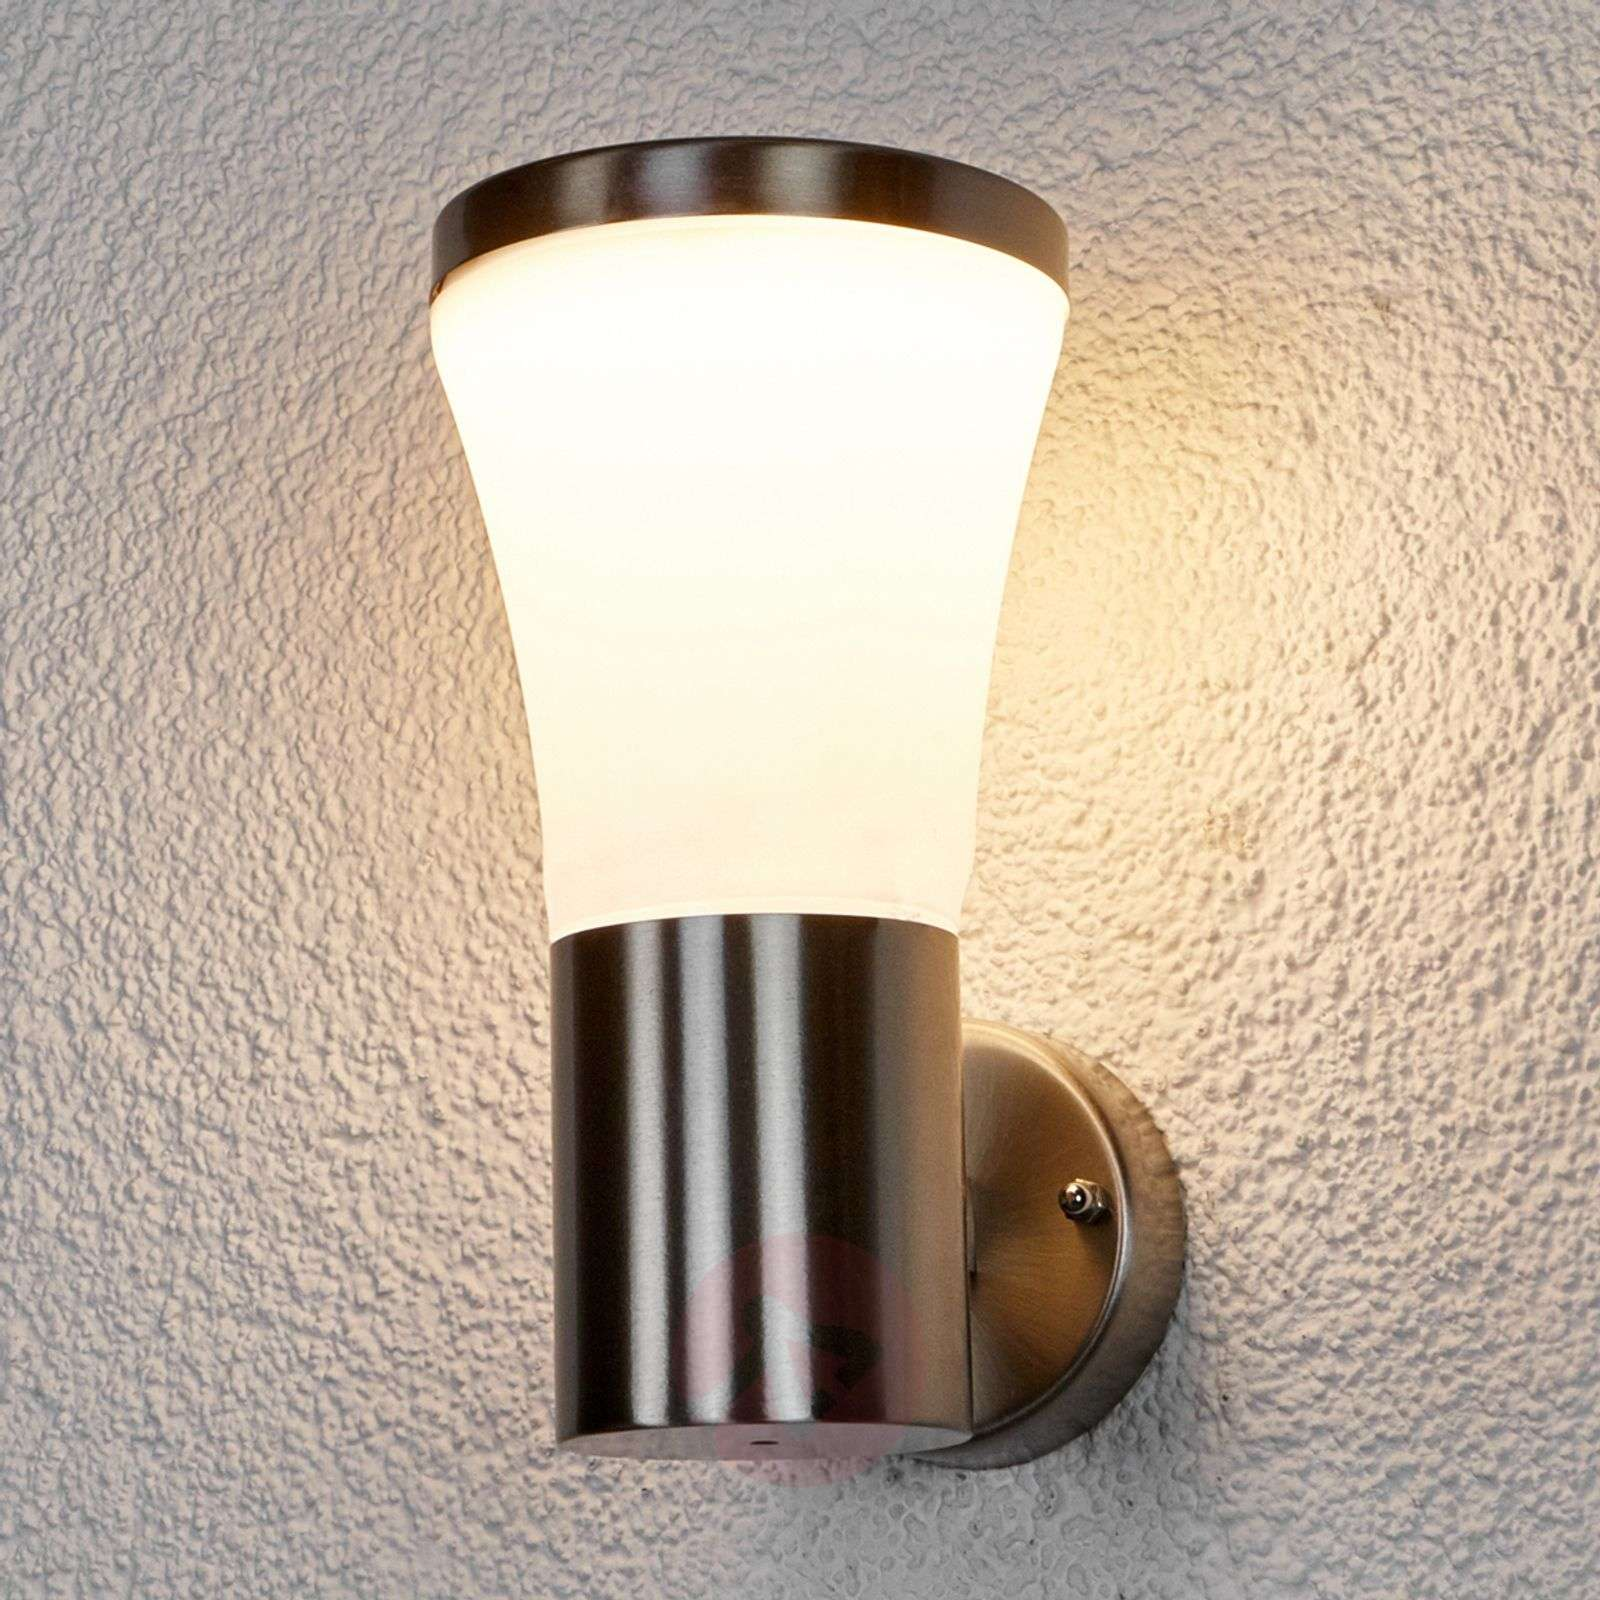 Stainless steel outdoor wall light Sumea with LEDs-9647068-01